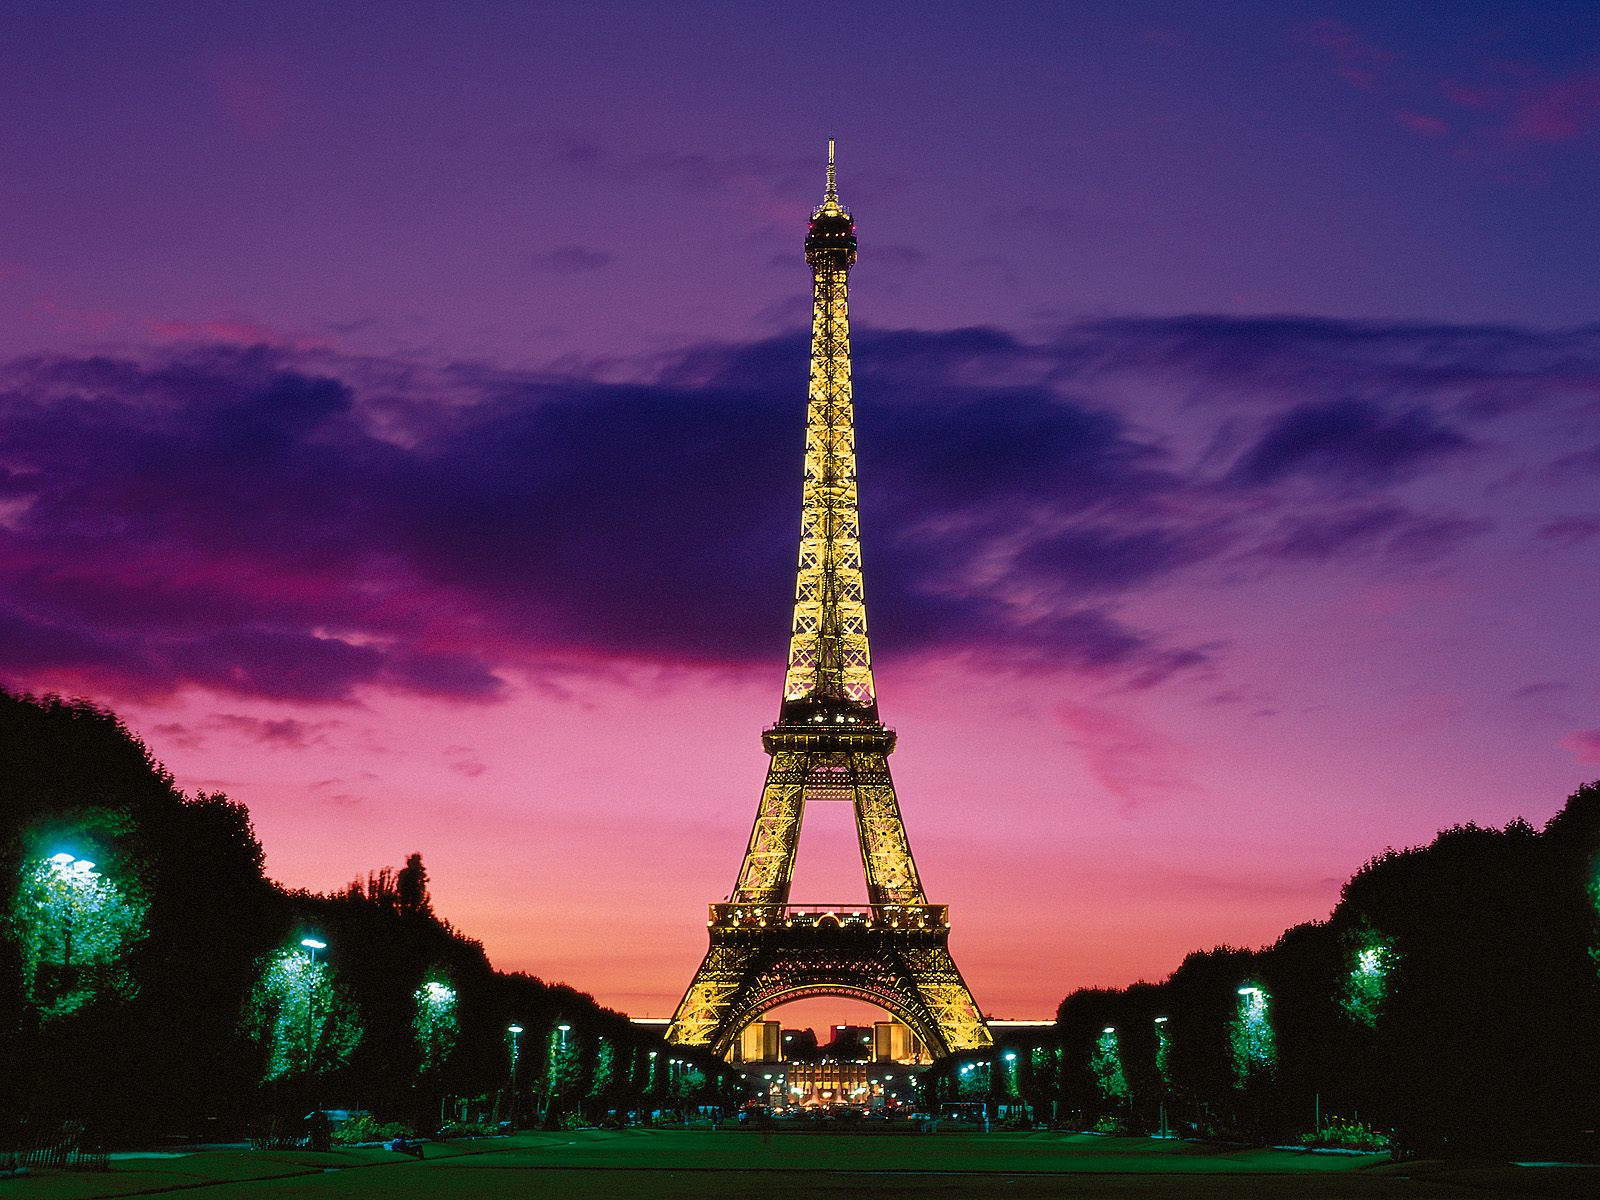 Eiffel Tower at Night Paris France Wallpapers HD Wallpapers 1600x1200